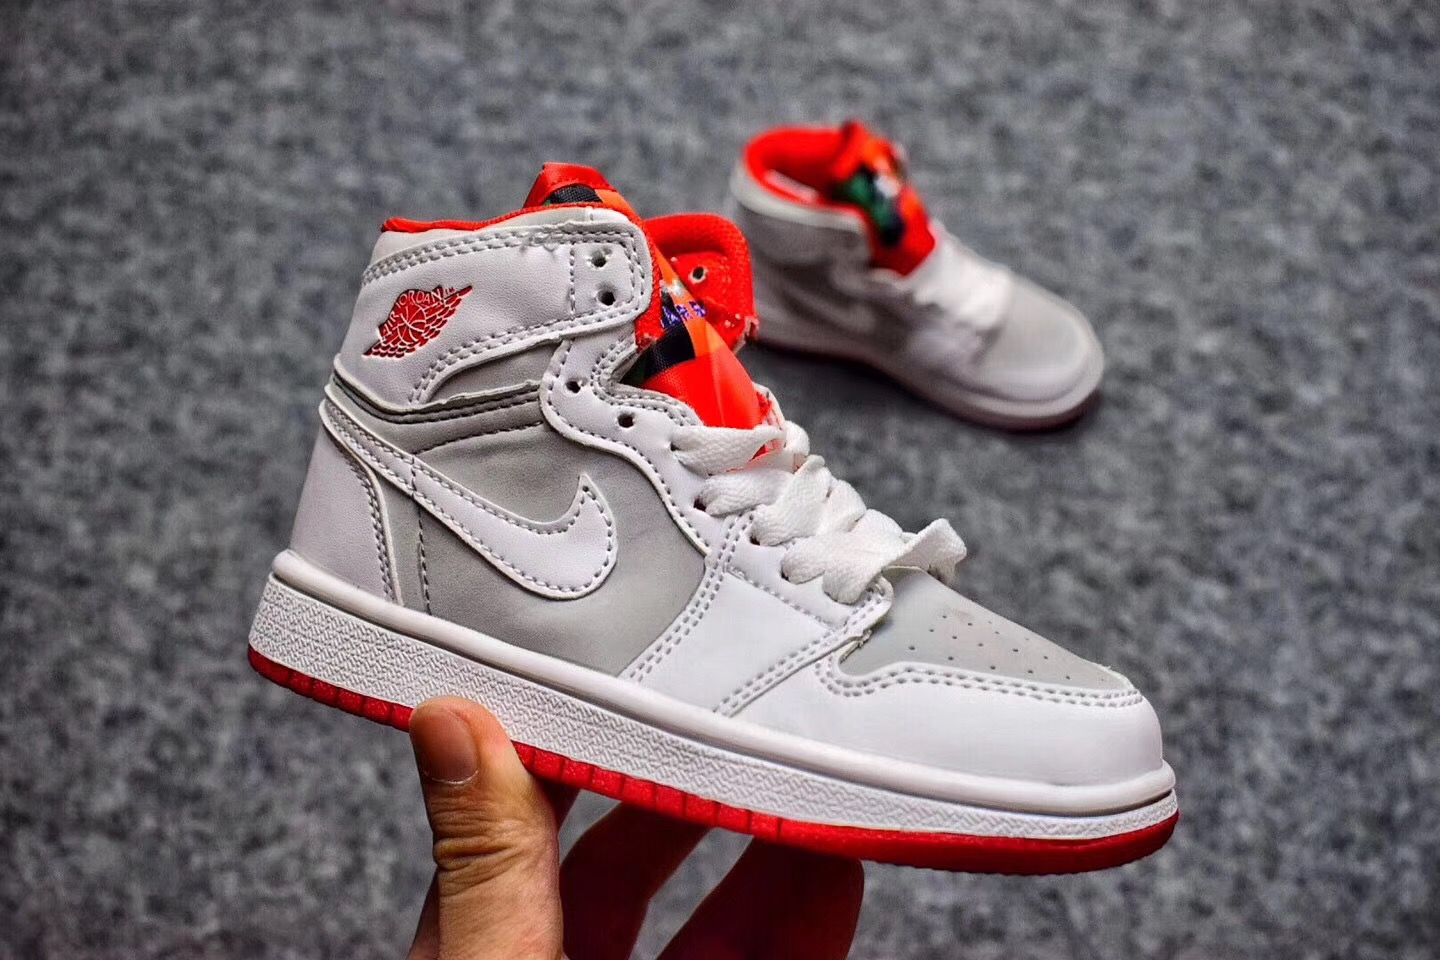 new style e50ee 1753a Nike Air Jordan I 1 Retro Kid Shoes White Silver Red 575441